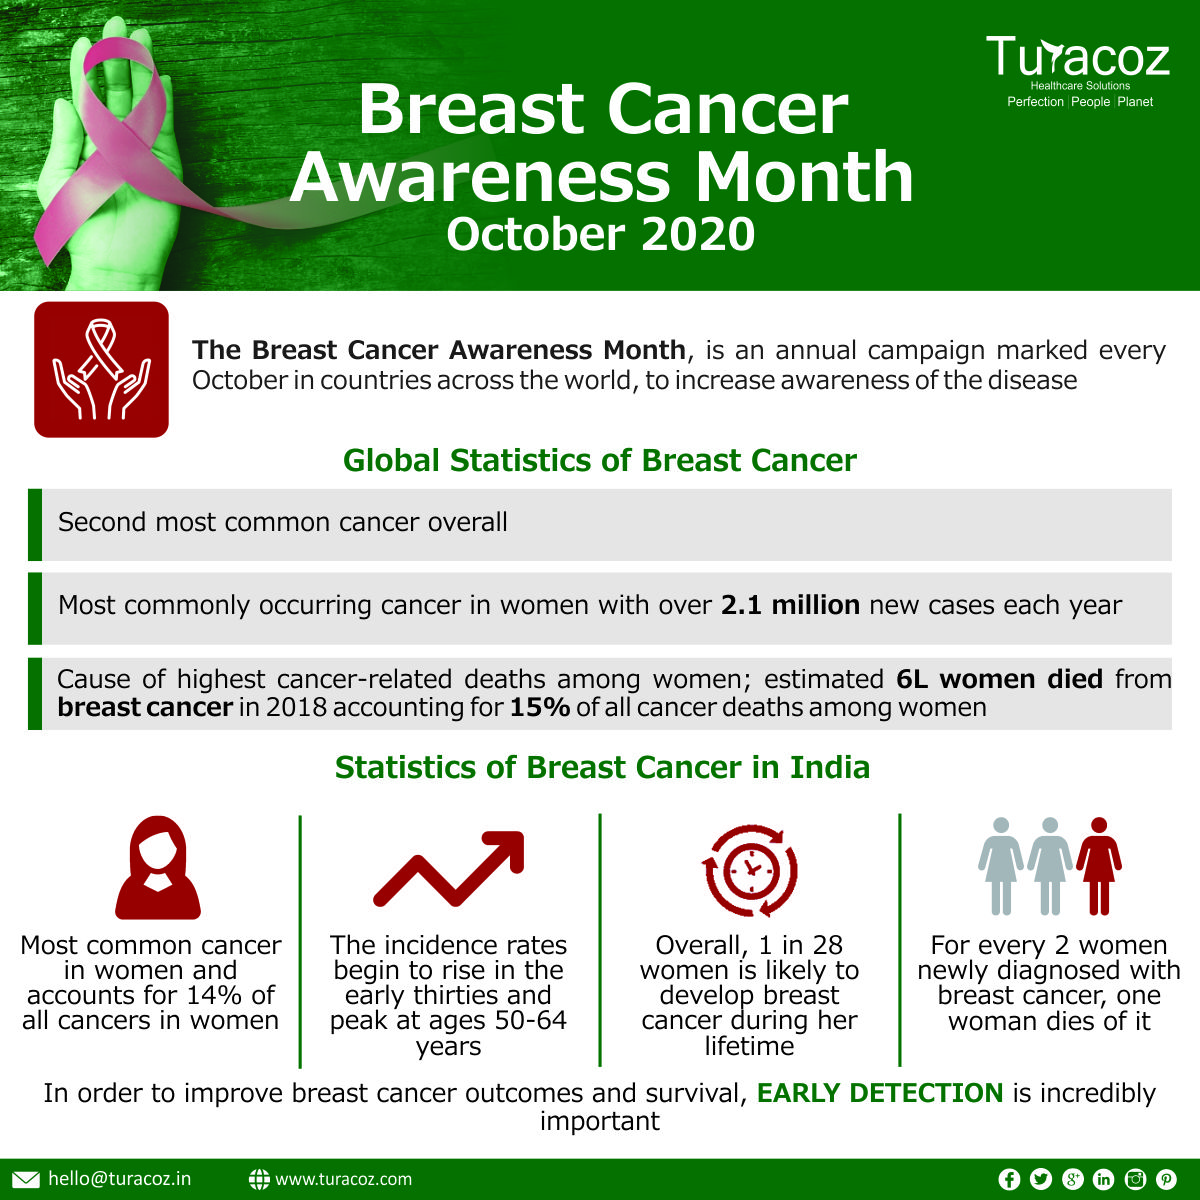 The Breast Cancer Awareness Month is an annual campaign marked every October in countries across the world, to increase awareness of the disease  #BreastCancerAwarenessMonth #breastcancer #Cancer #BreastCancerAwareness #awareness #womenshealth #CancerAwareness #Pink #pinkribbon https://t.co/AgdWuT6CW3